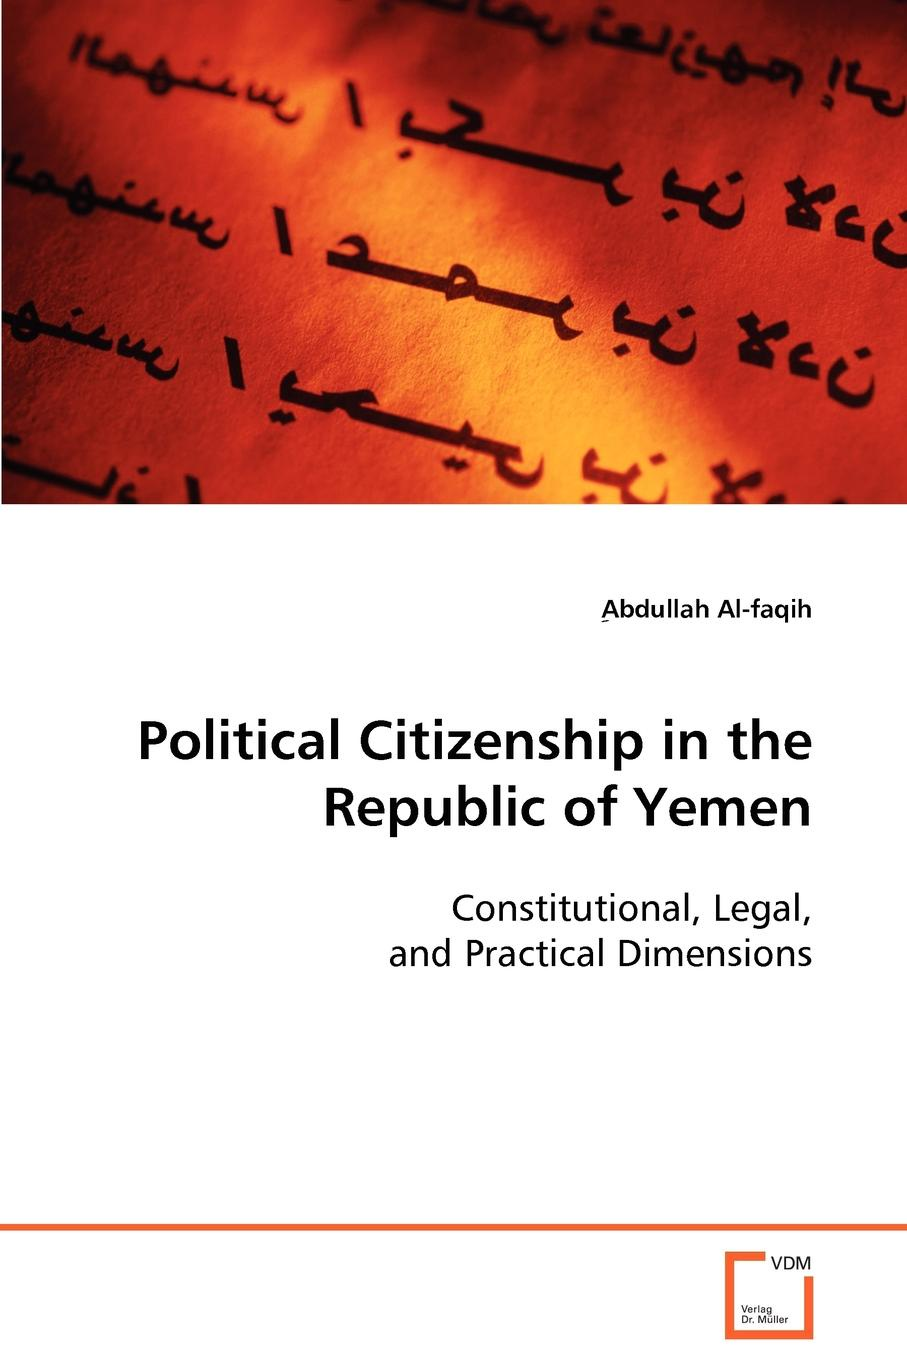 ِAbdullah ِAl-faqih Political Citizenship in the Republic of Yemen alexey szydlowski ferguson model of the racial political conflict constitutional and legal aspects